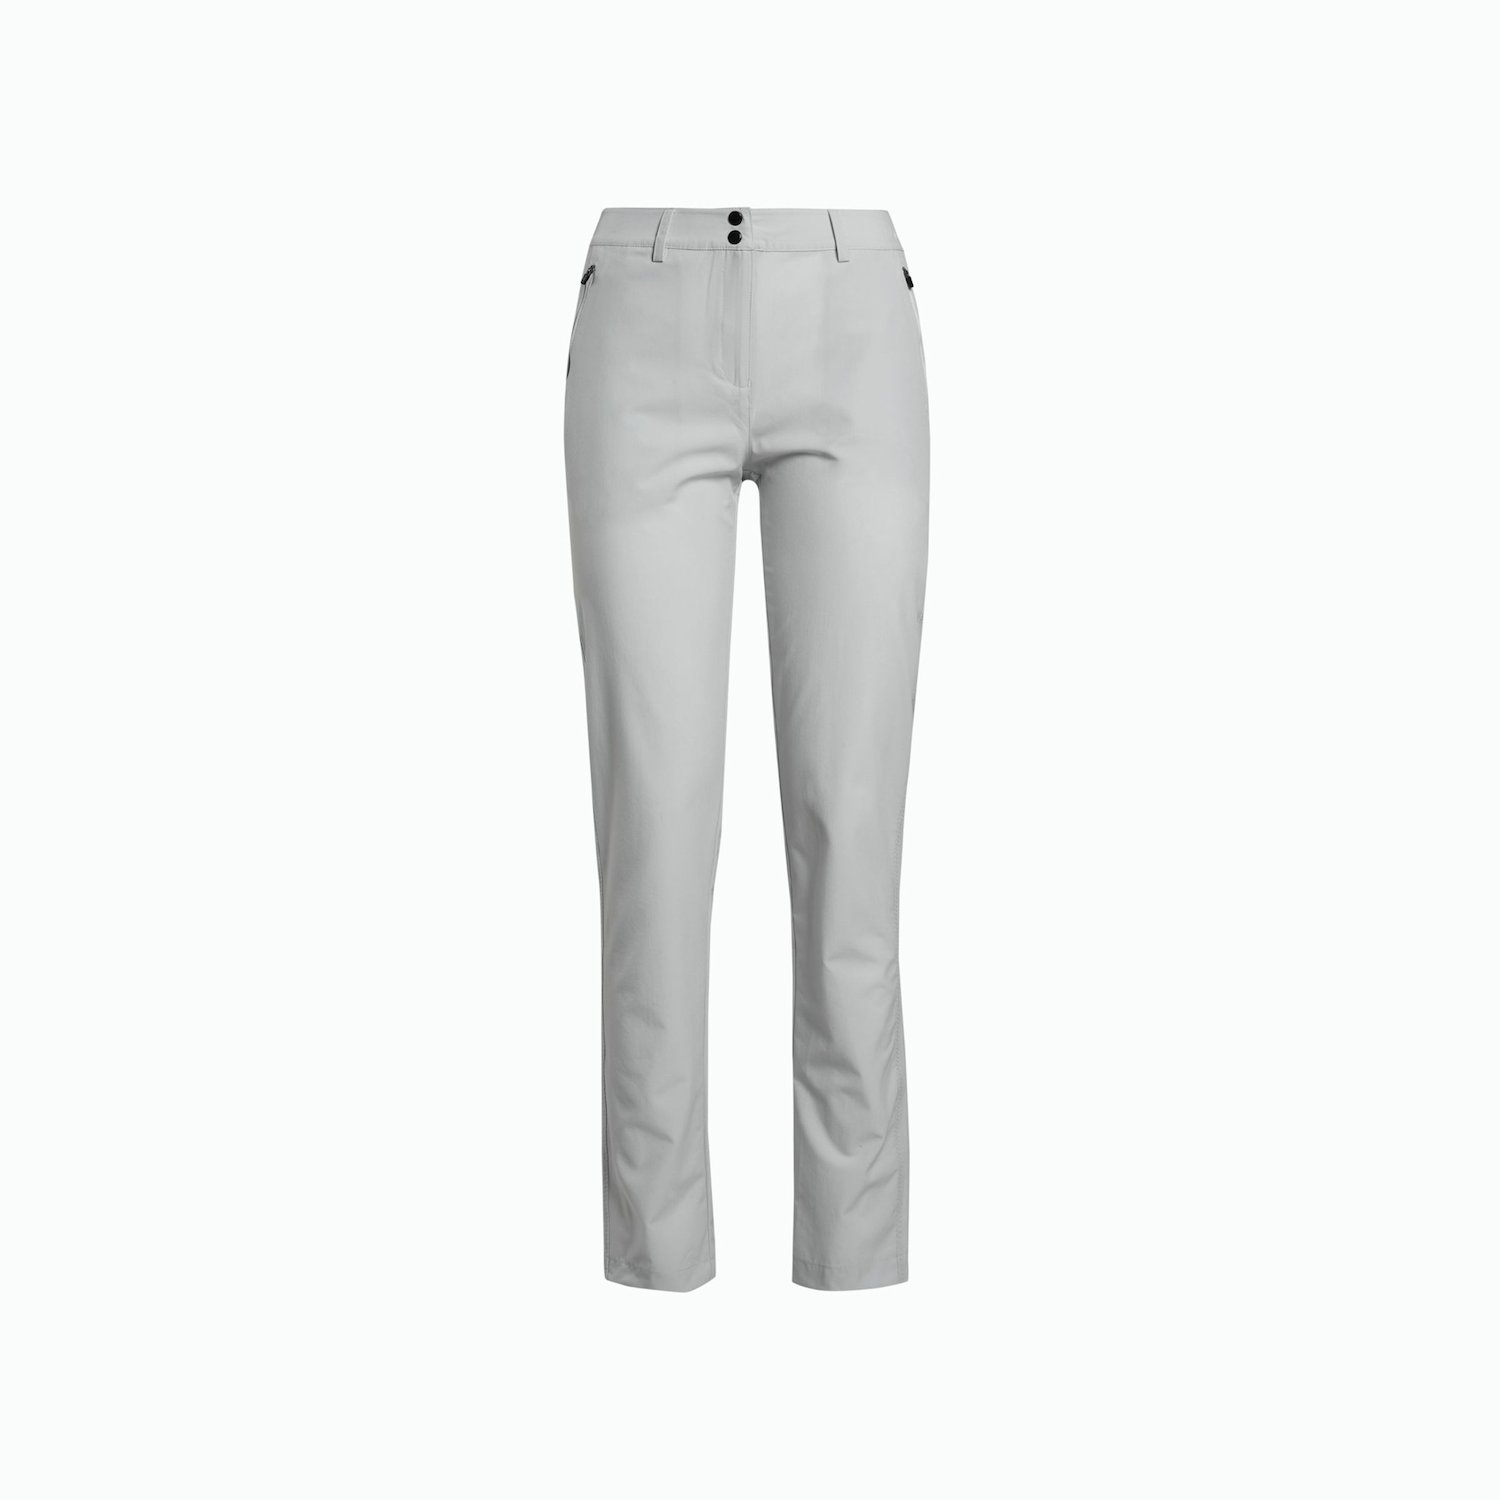 TROUSER A24 - Fog Grey